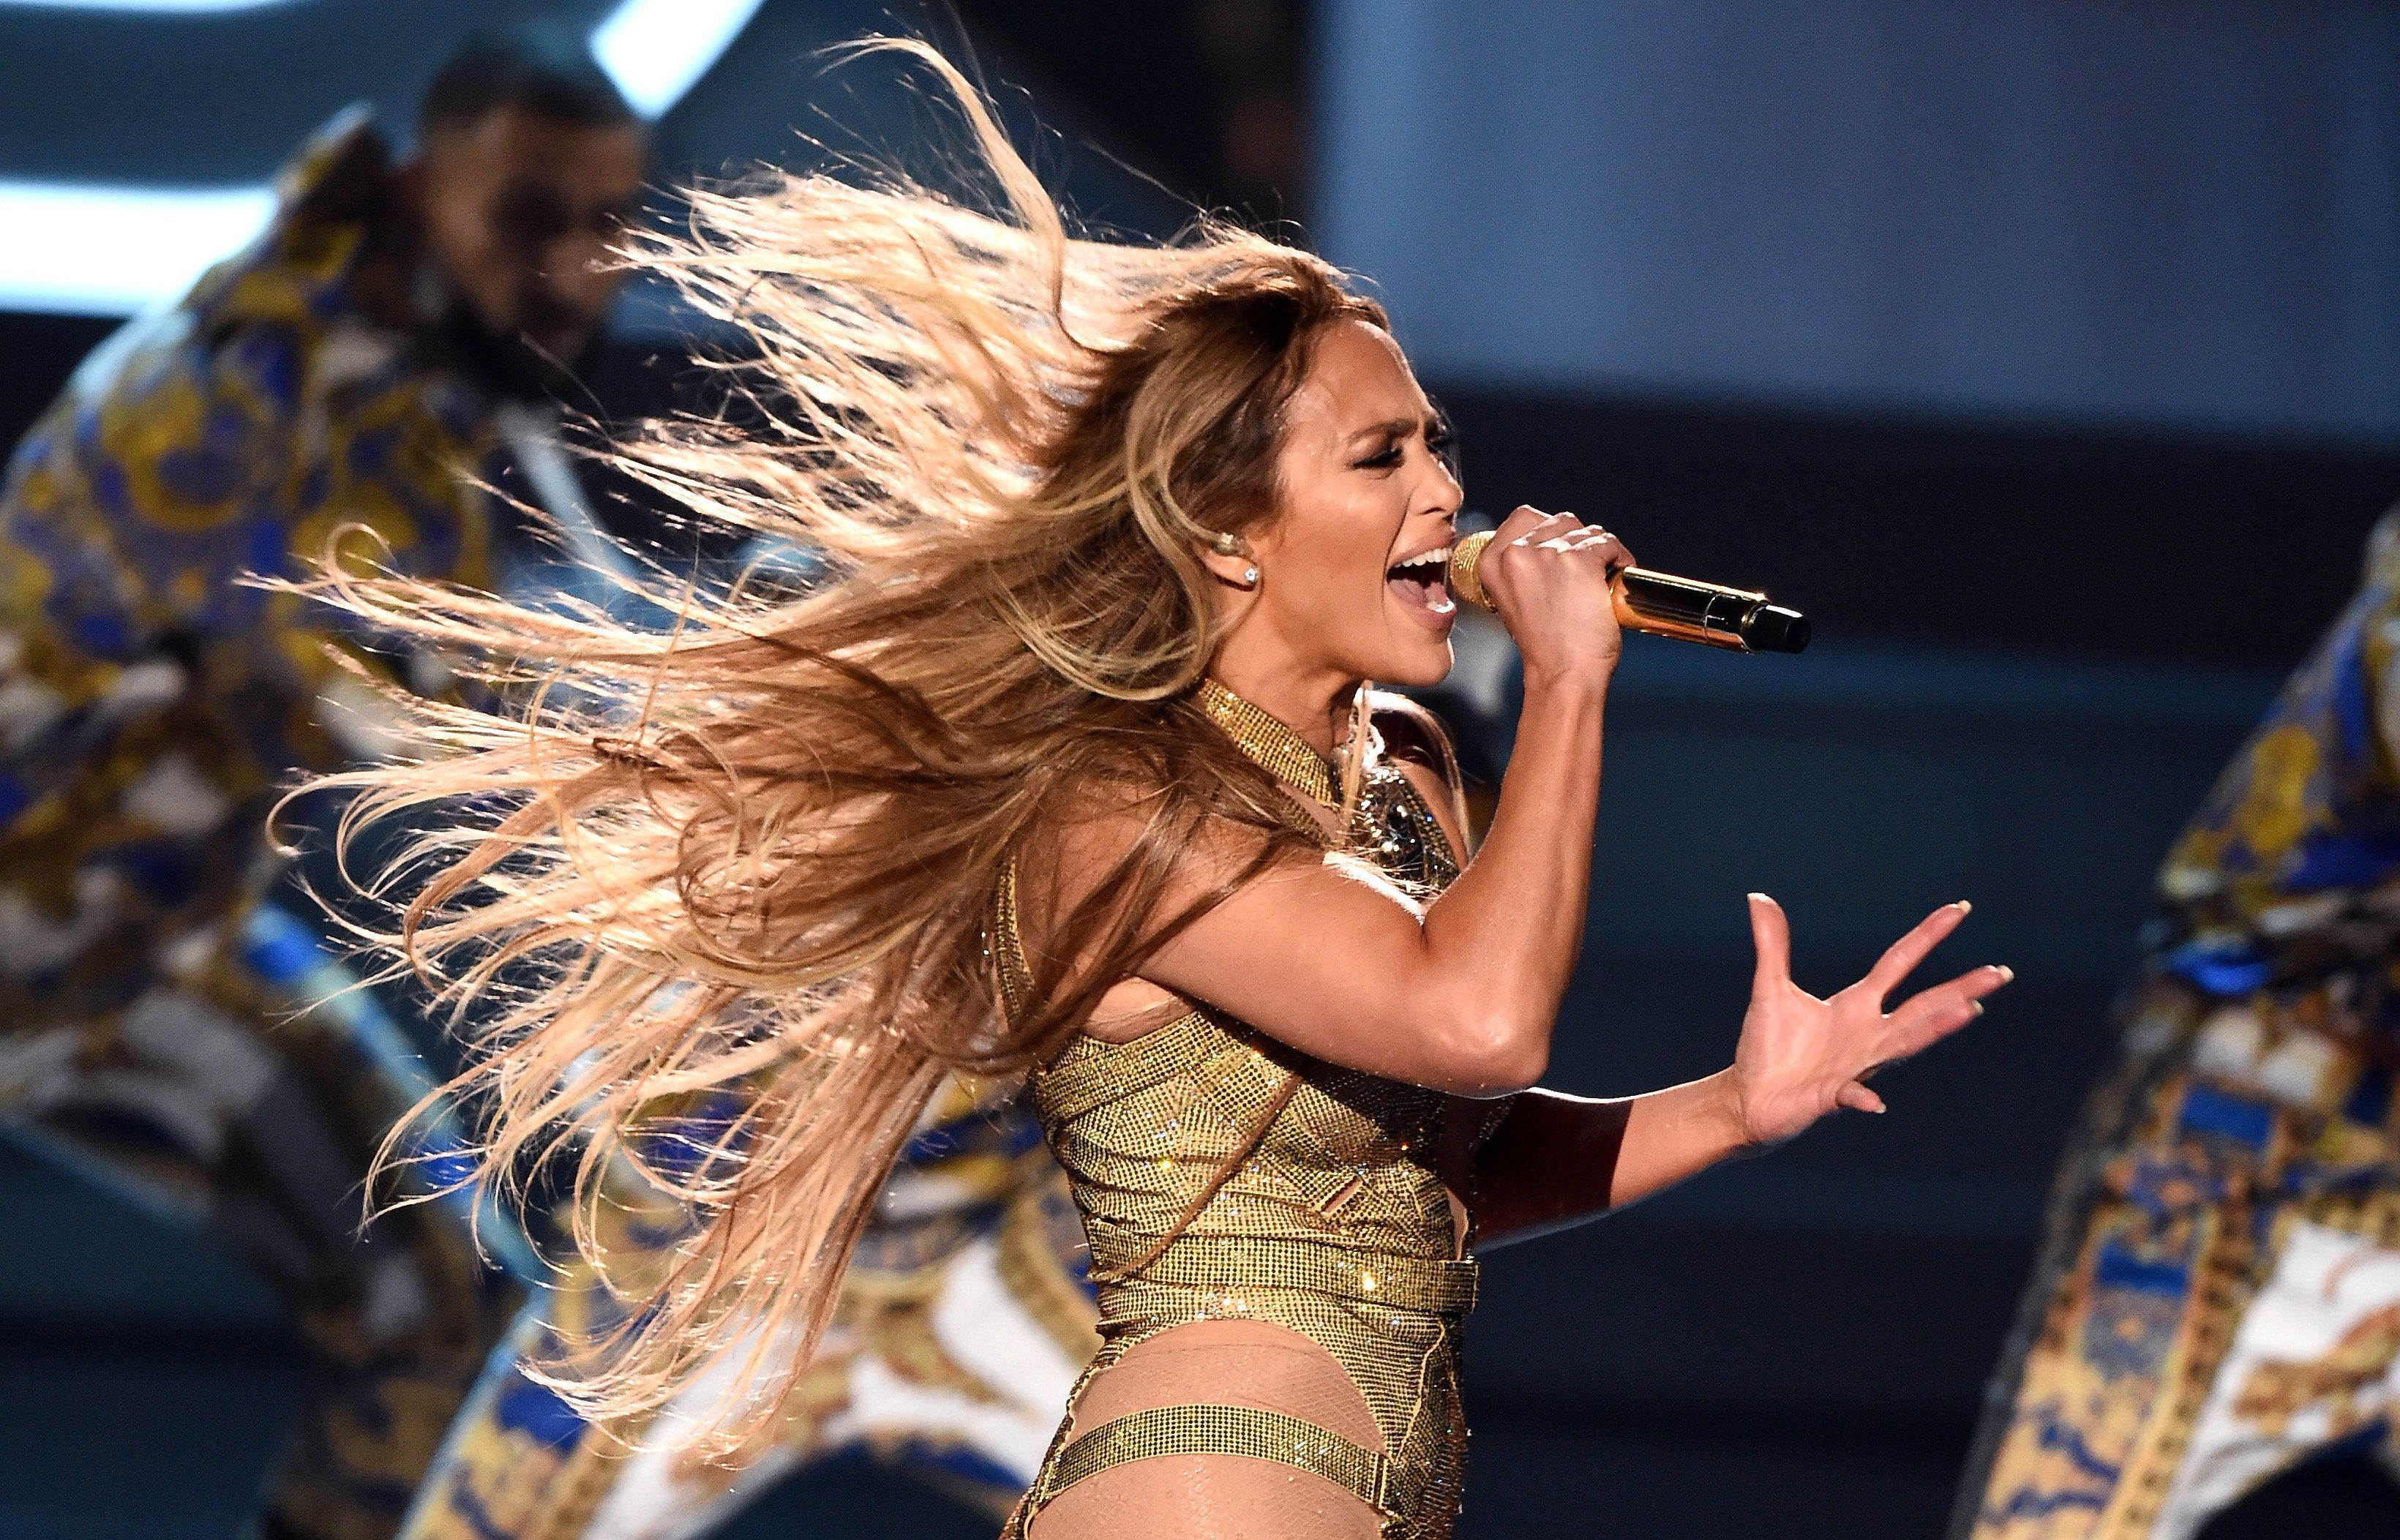 Lopez slayed her performance at the 2018 MTV VMAs.